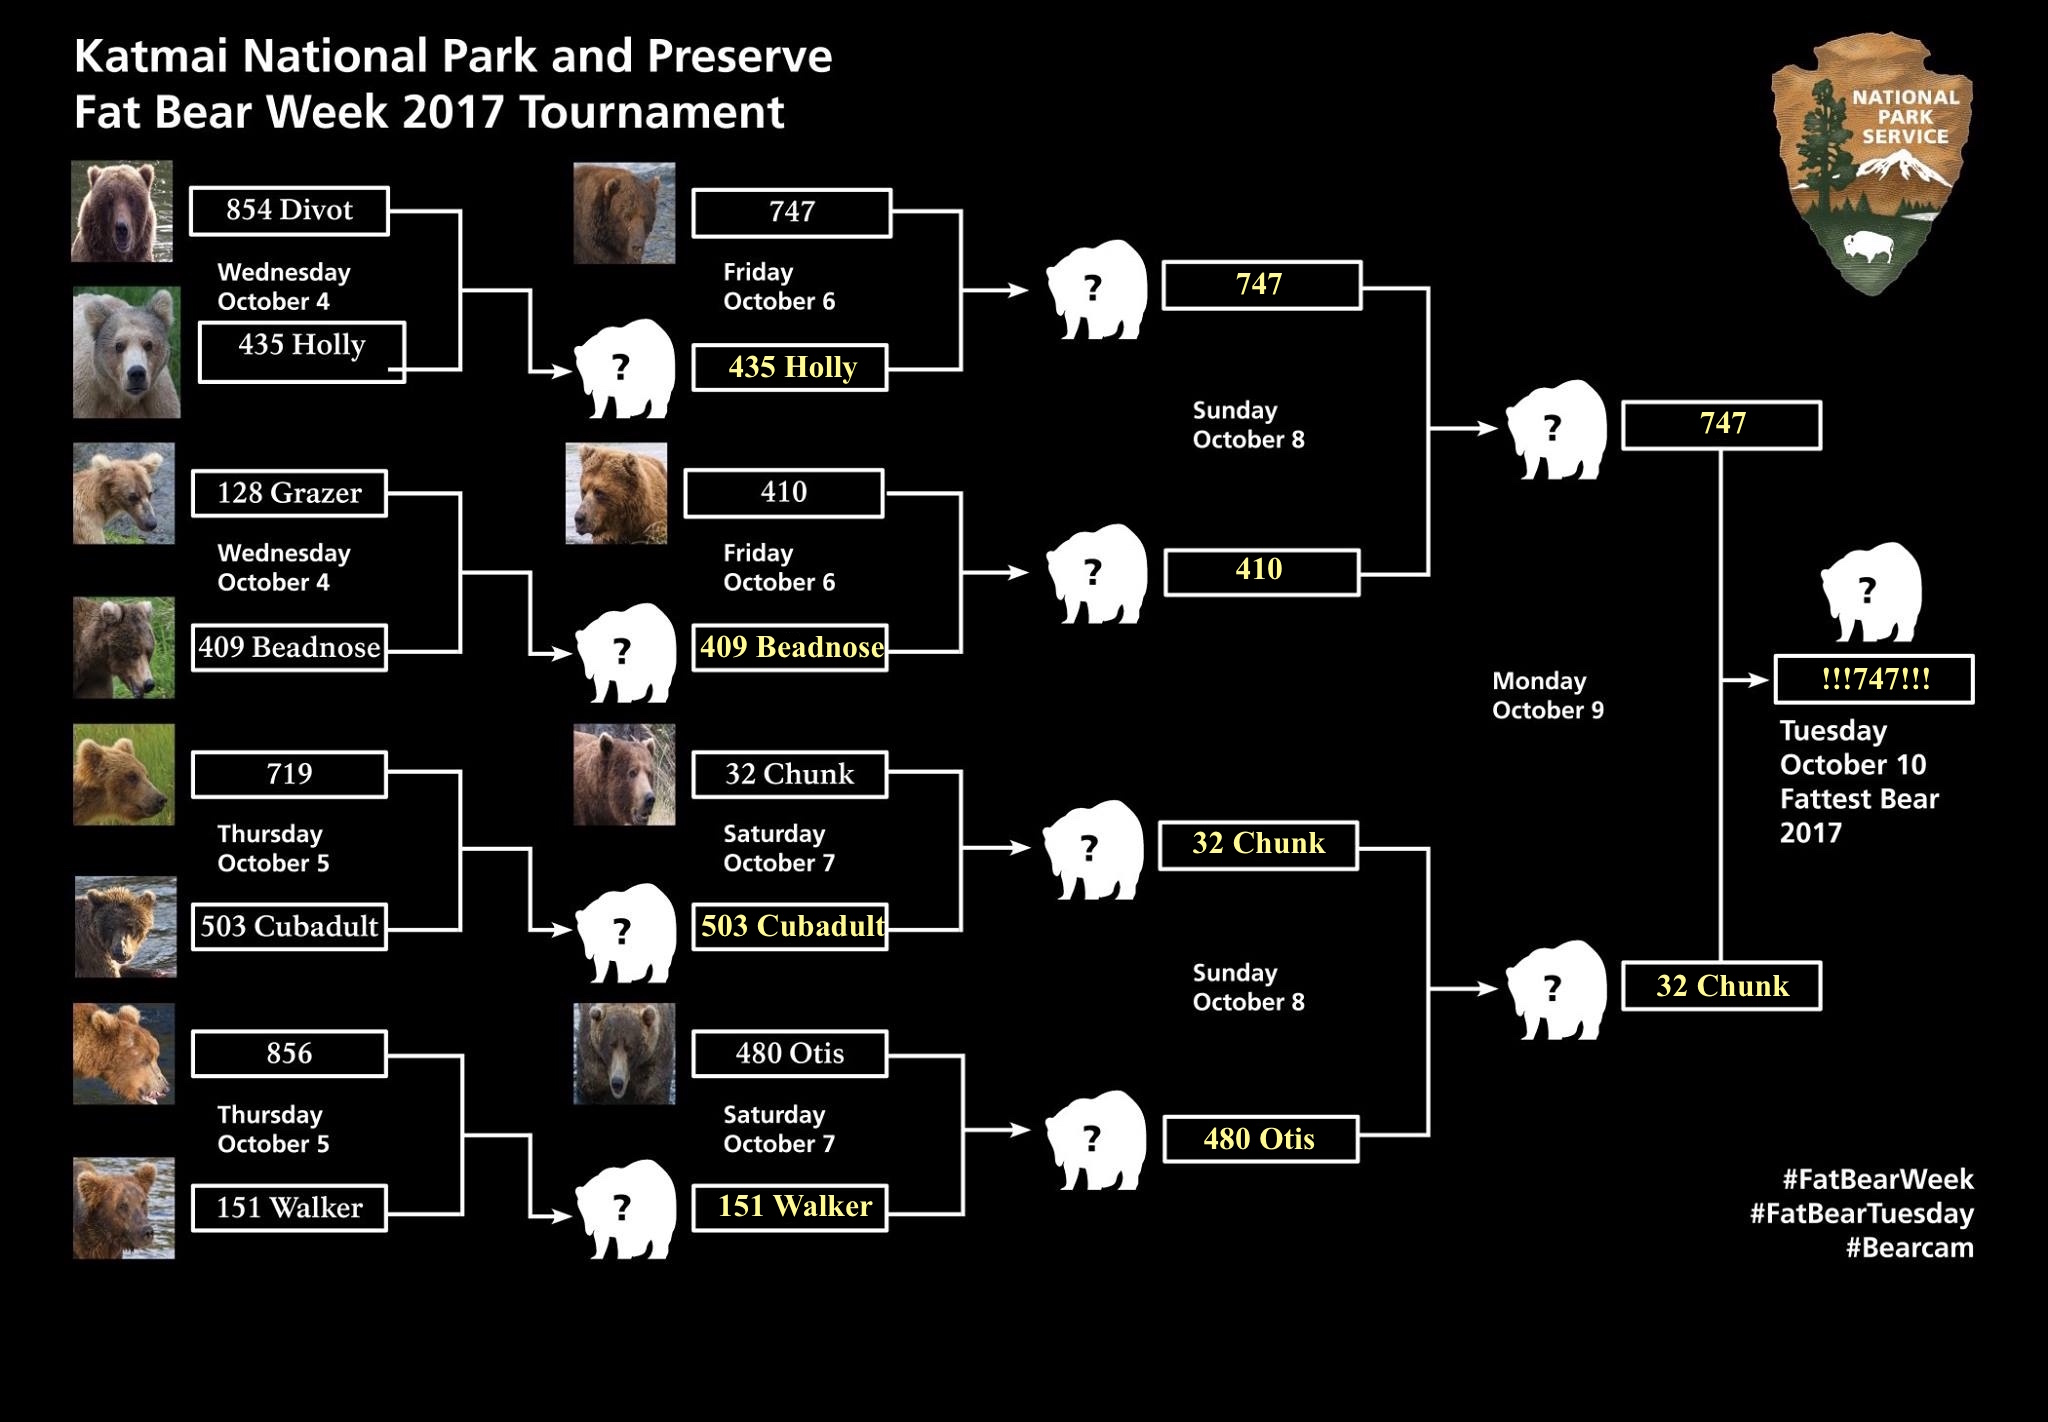 2017 Fat Bear Week bracket with 747 as champ